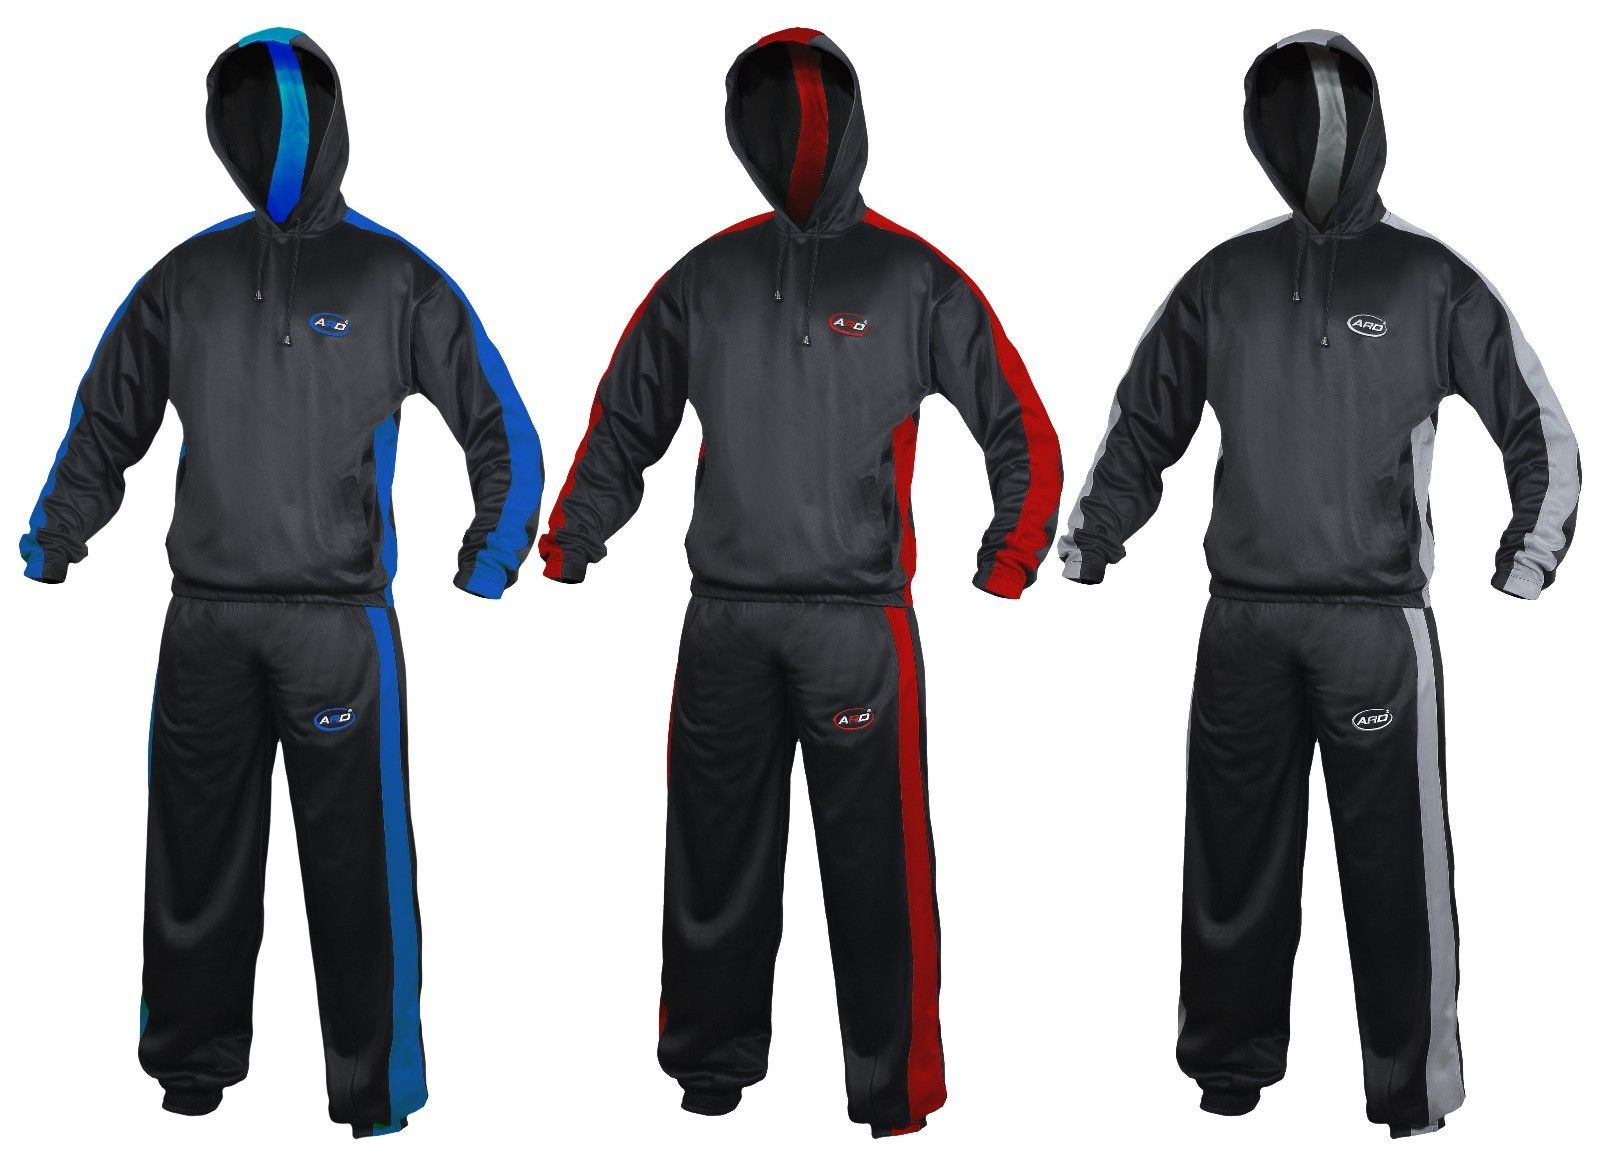 ARD CHAMPS™ Heavy Duty Sweat Suit Sauna Exercise Gym Fitness Weight Loss, Color Black Grey, Size XL